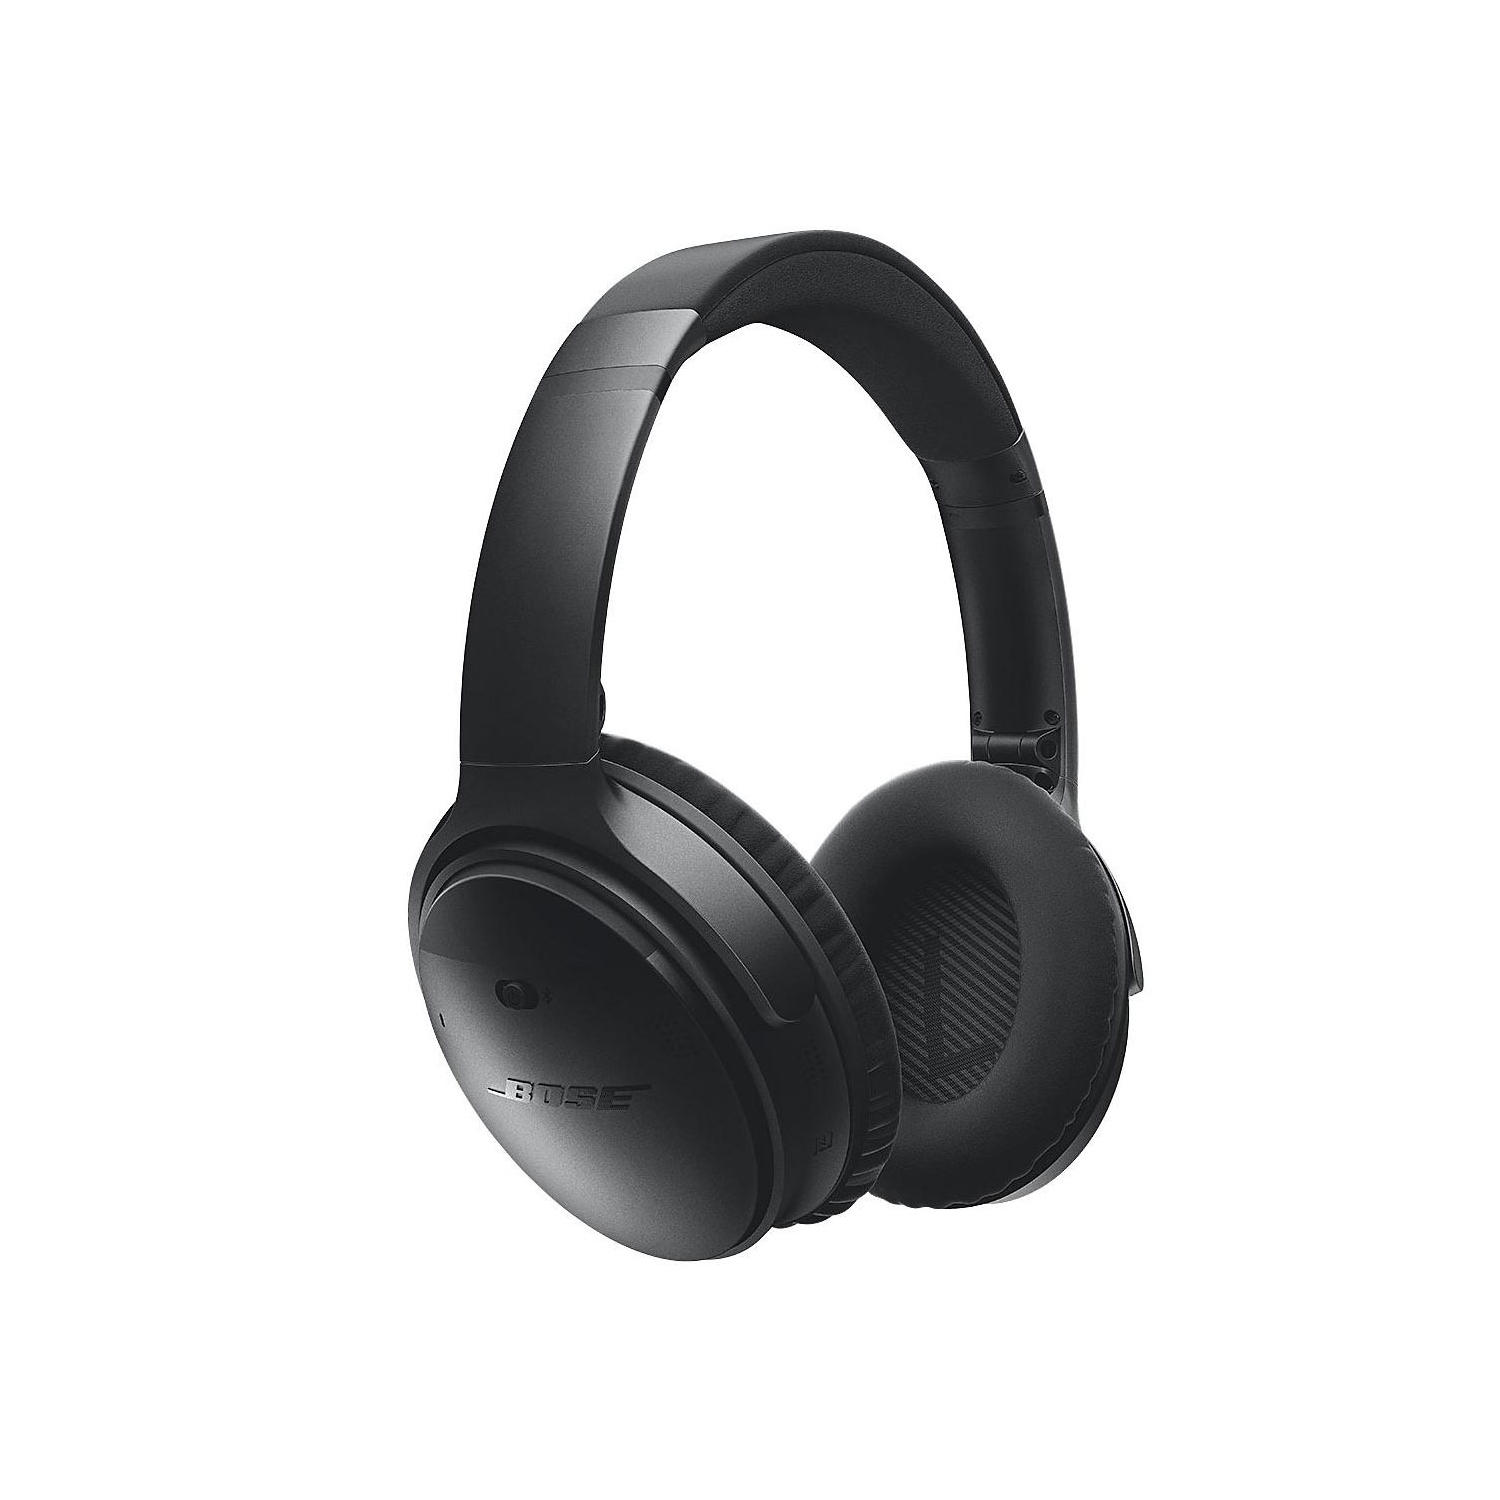 Bose QC35 Noise Canceling Wireless Headphones